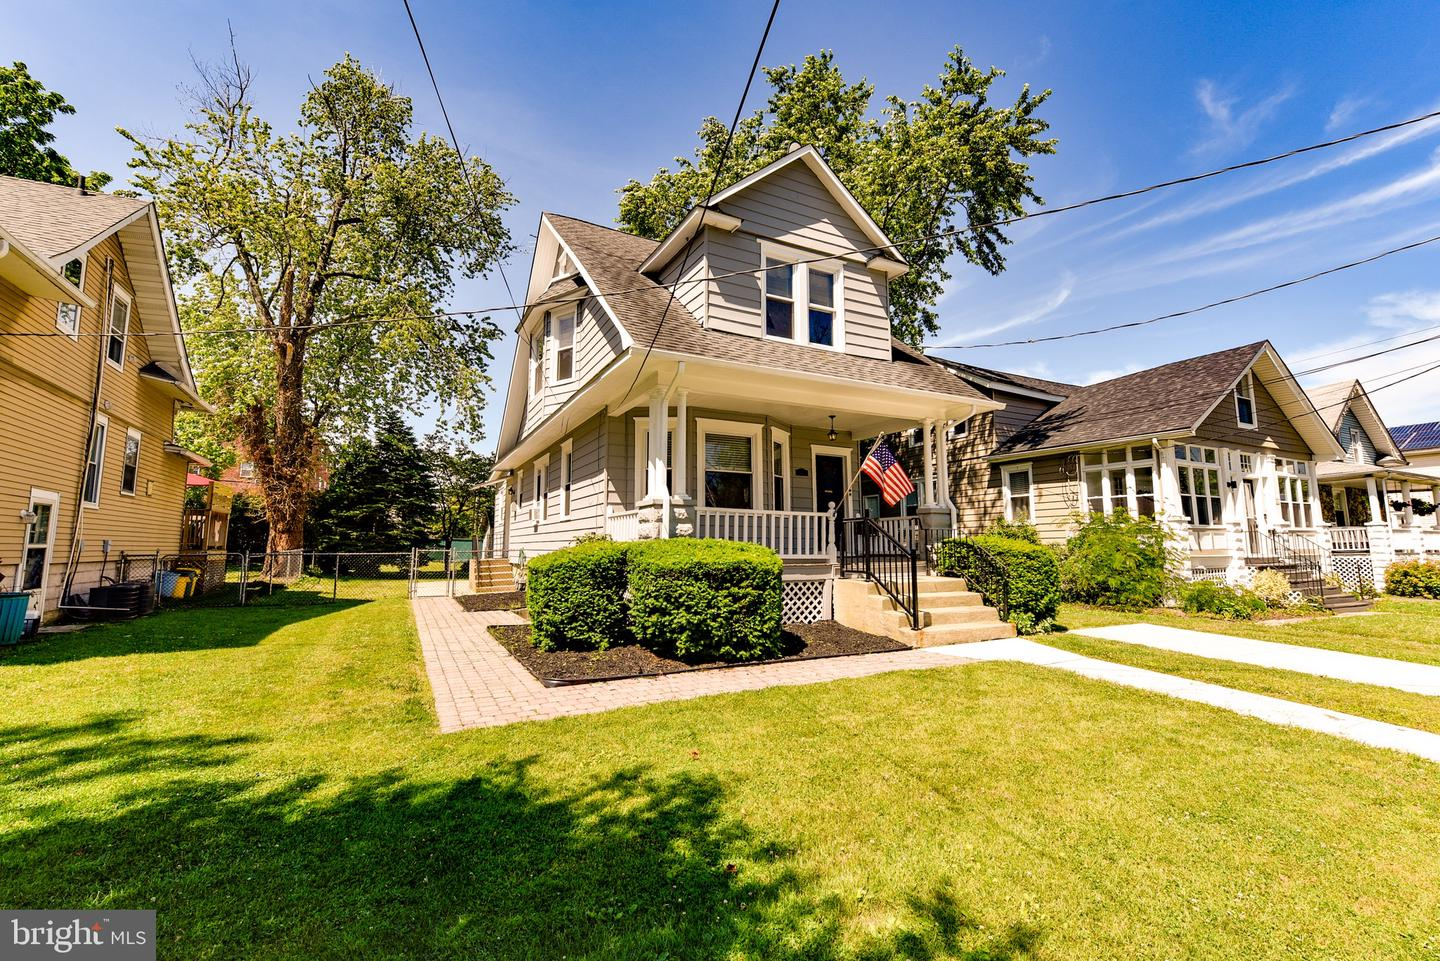 Duplex Homes for Sale at Audubon, New Jersey 08106 United States